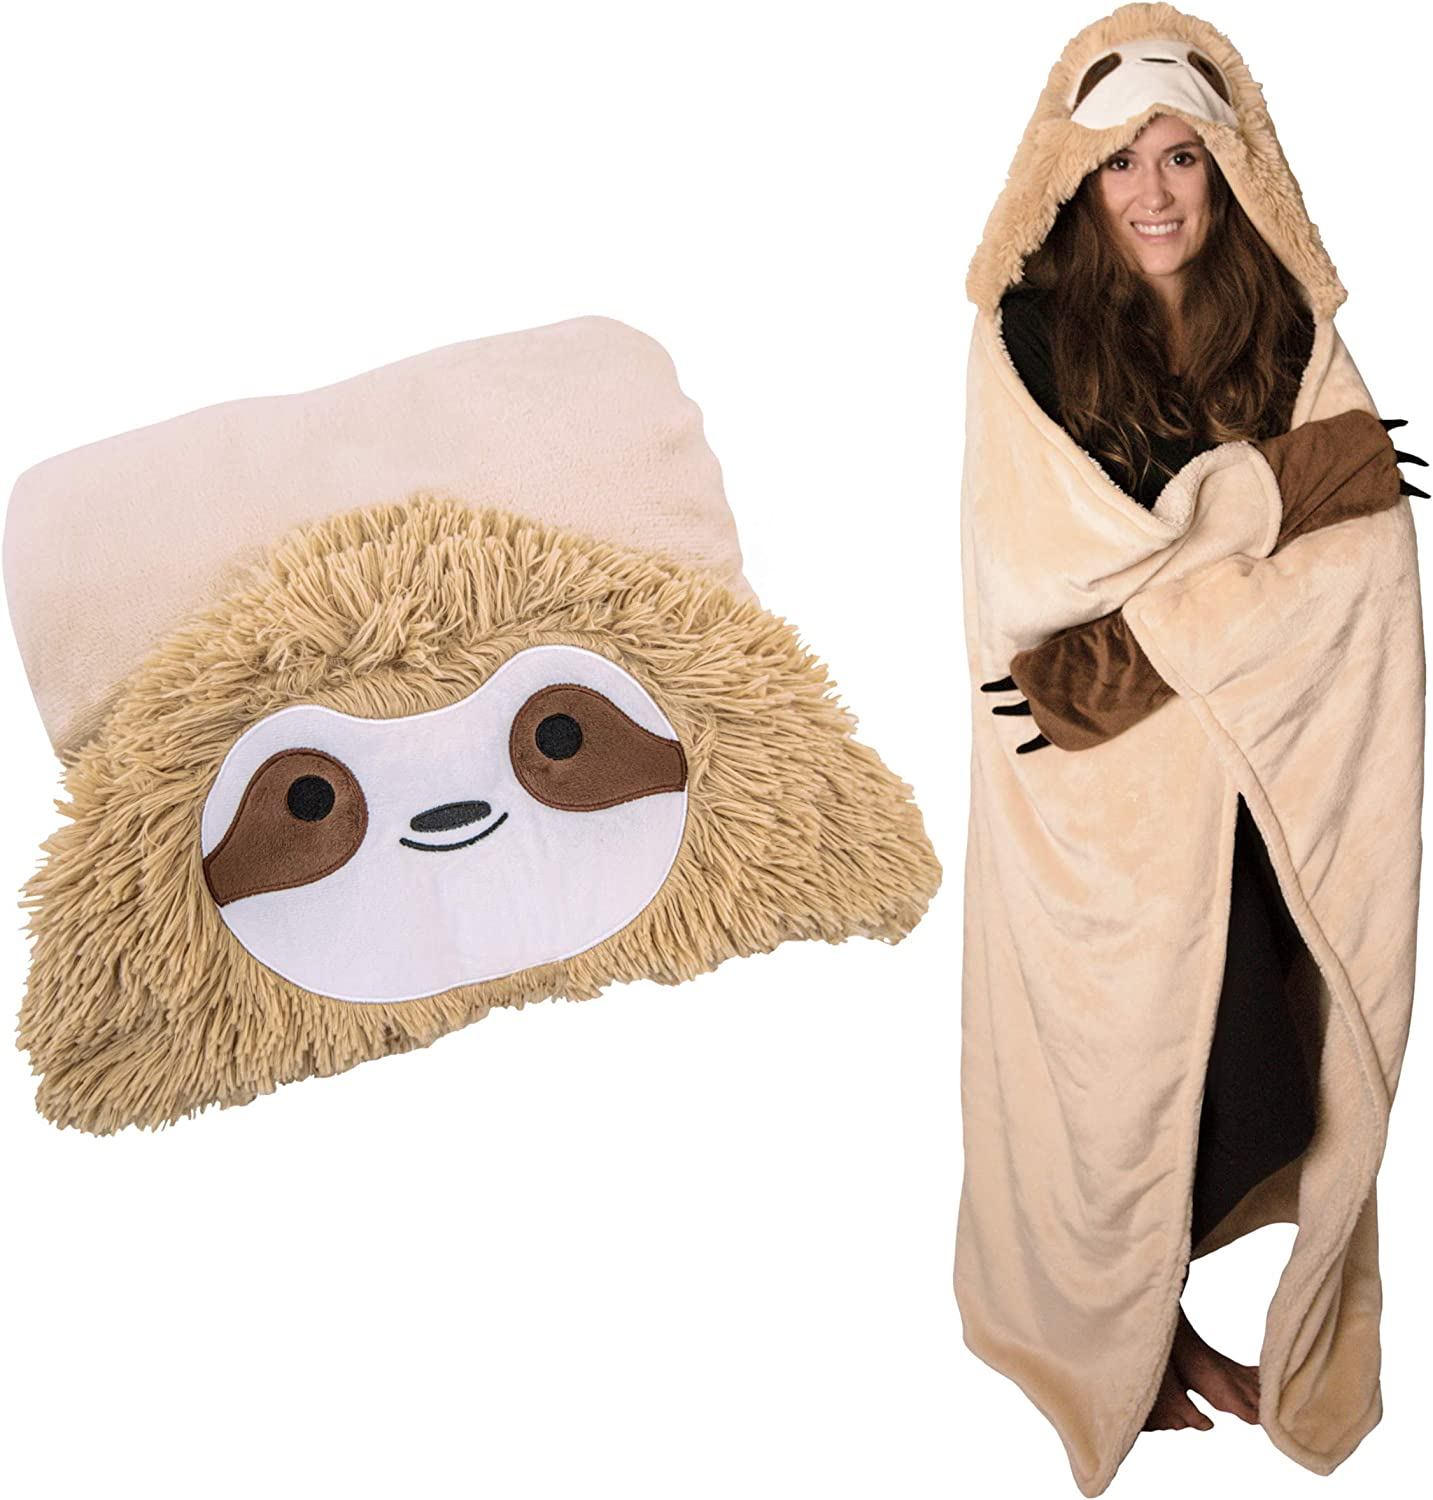 Original Authentic Slothy Sloth Wearable Hooded Blanket